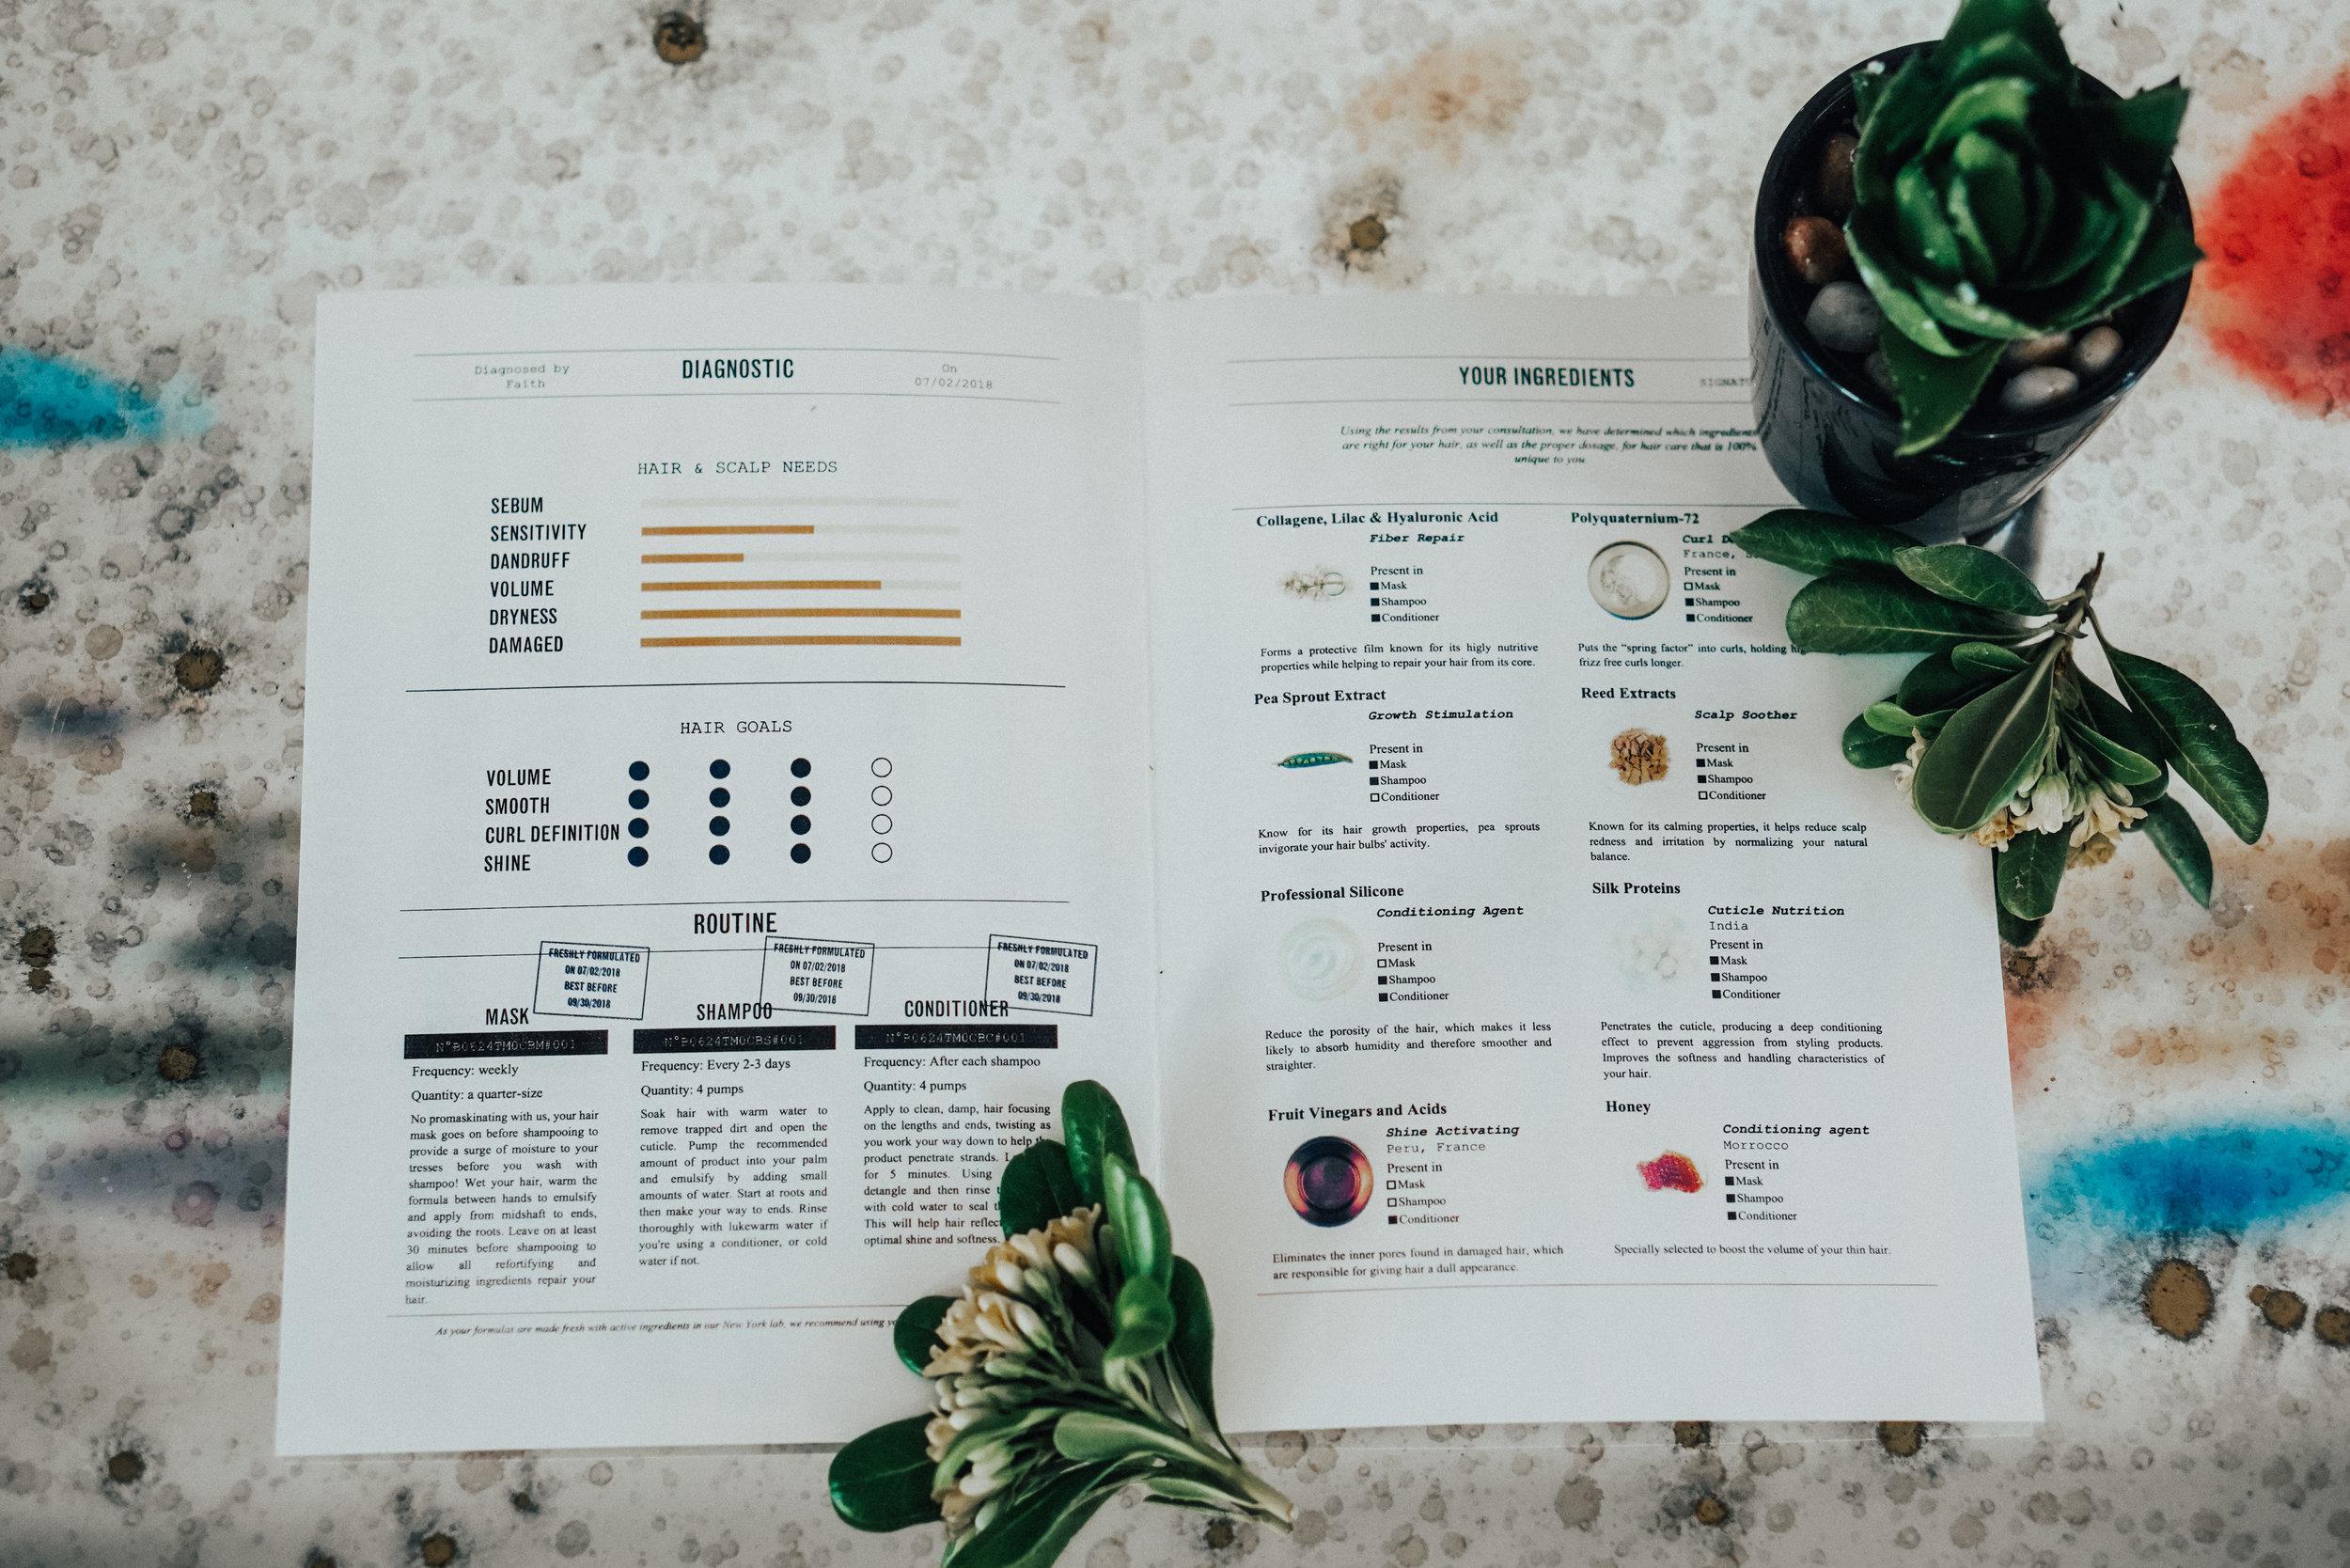 My formula's unique ingredient list and ste-by-step routine